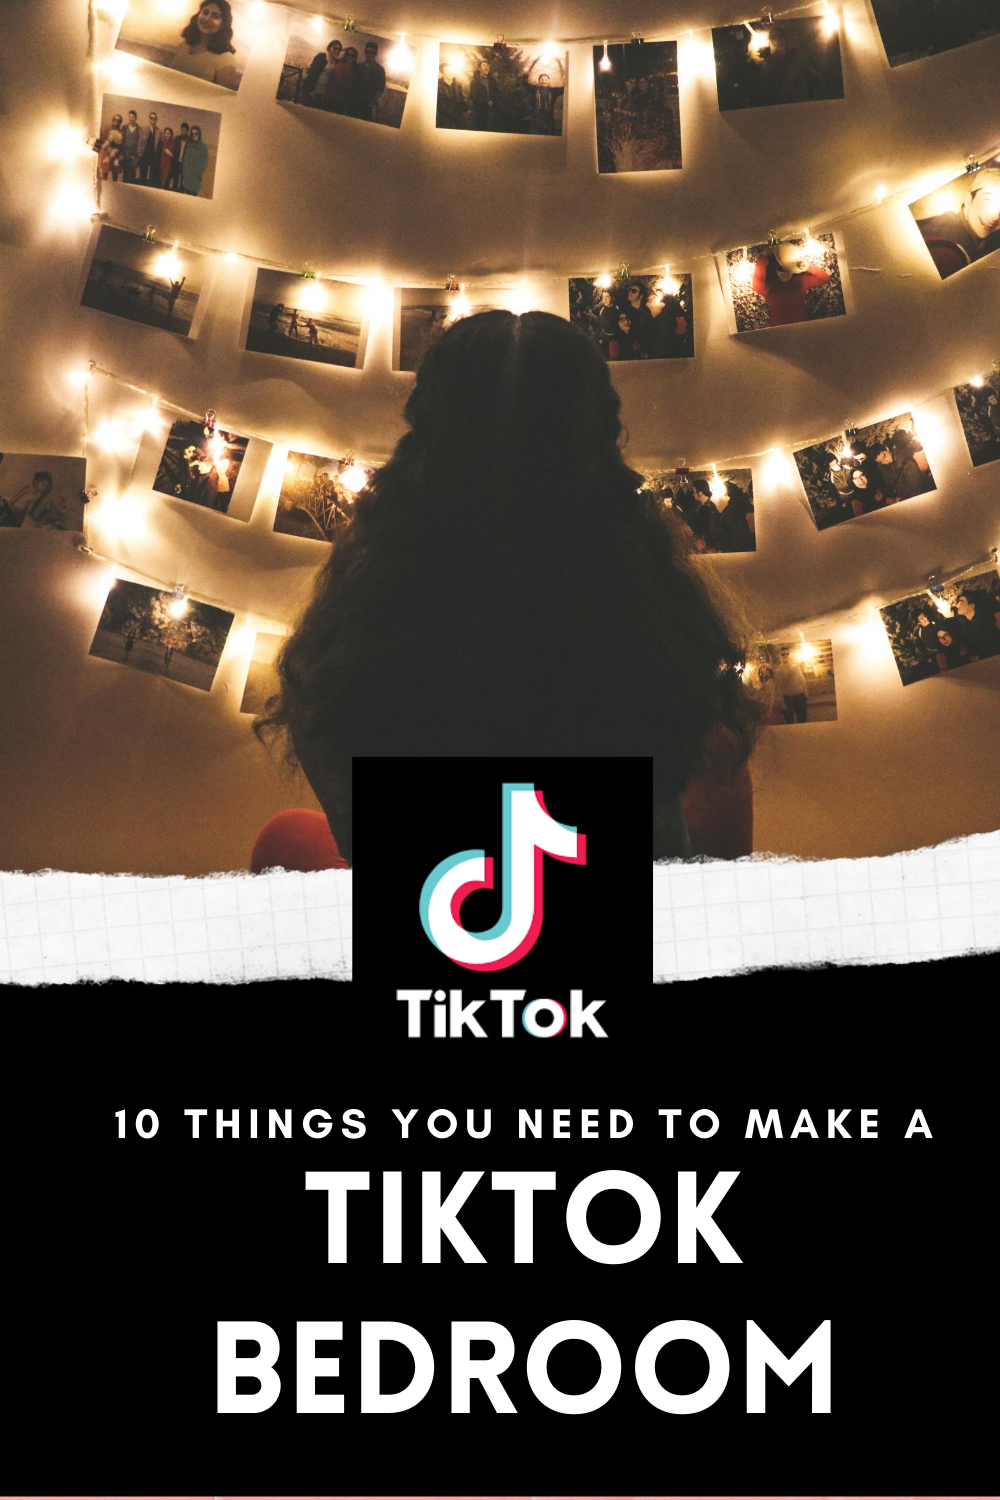 Vibe Check Get The Tiktok Aesthetic In Your Bedroom With These 10 Products 10 Things Ways To Save Money Diy Projects